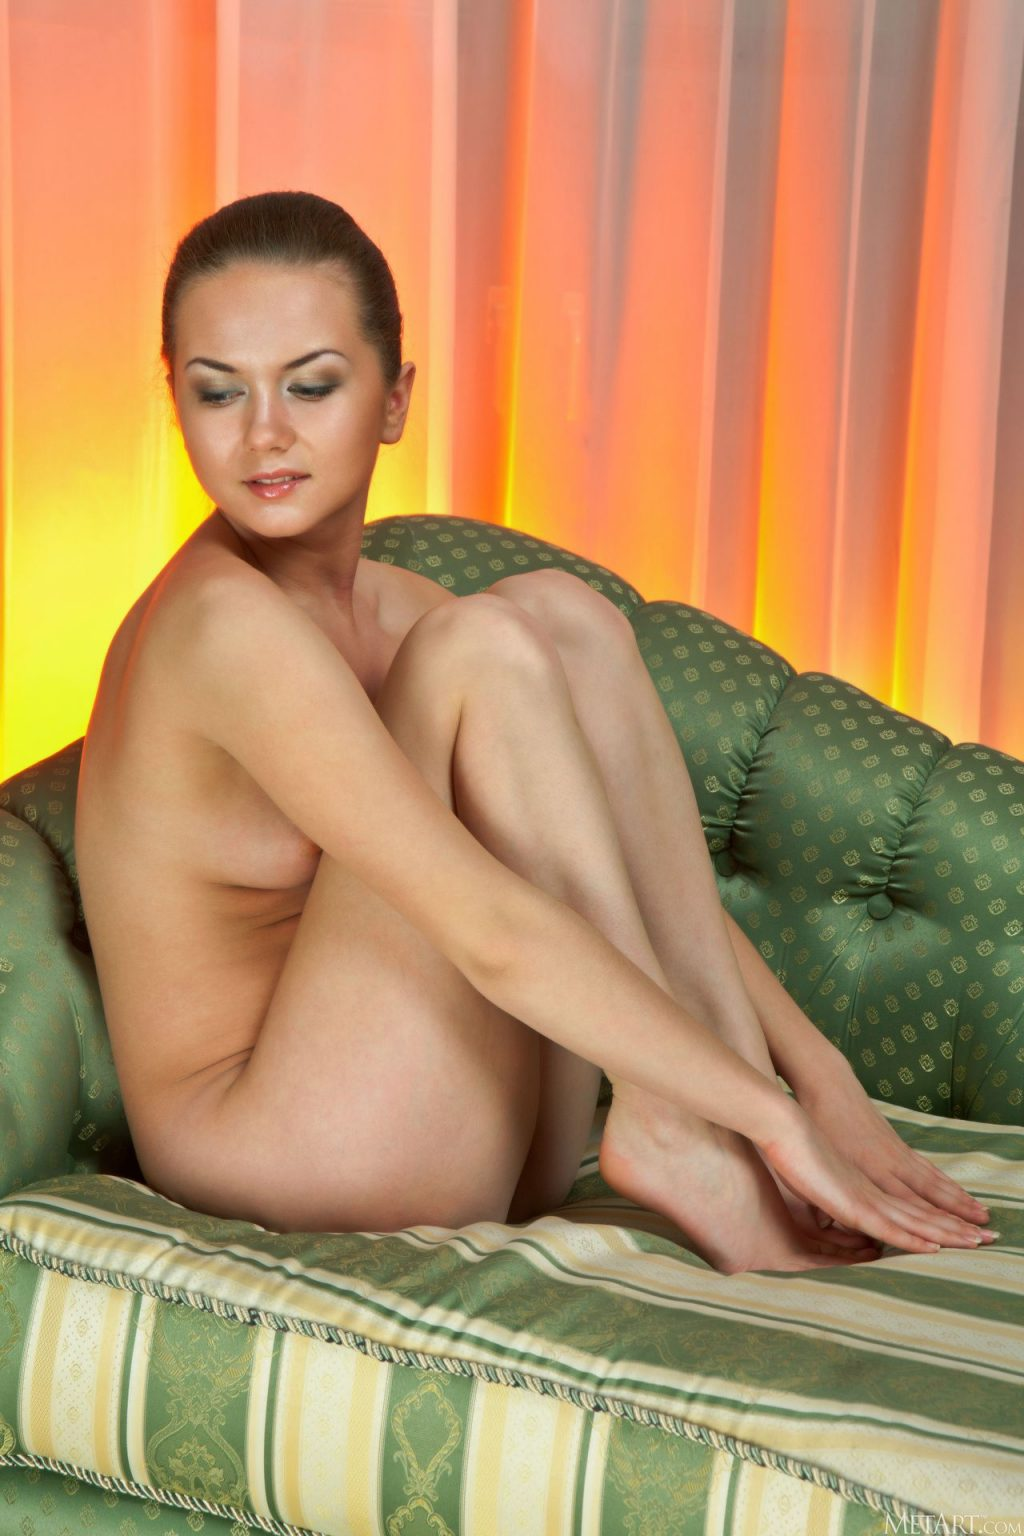 Andere A Nude – Throwback (132 Photos)